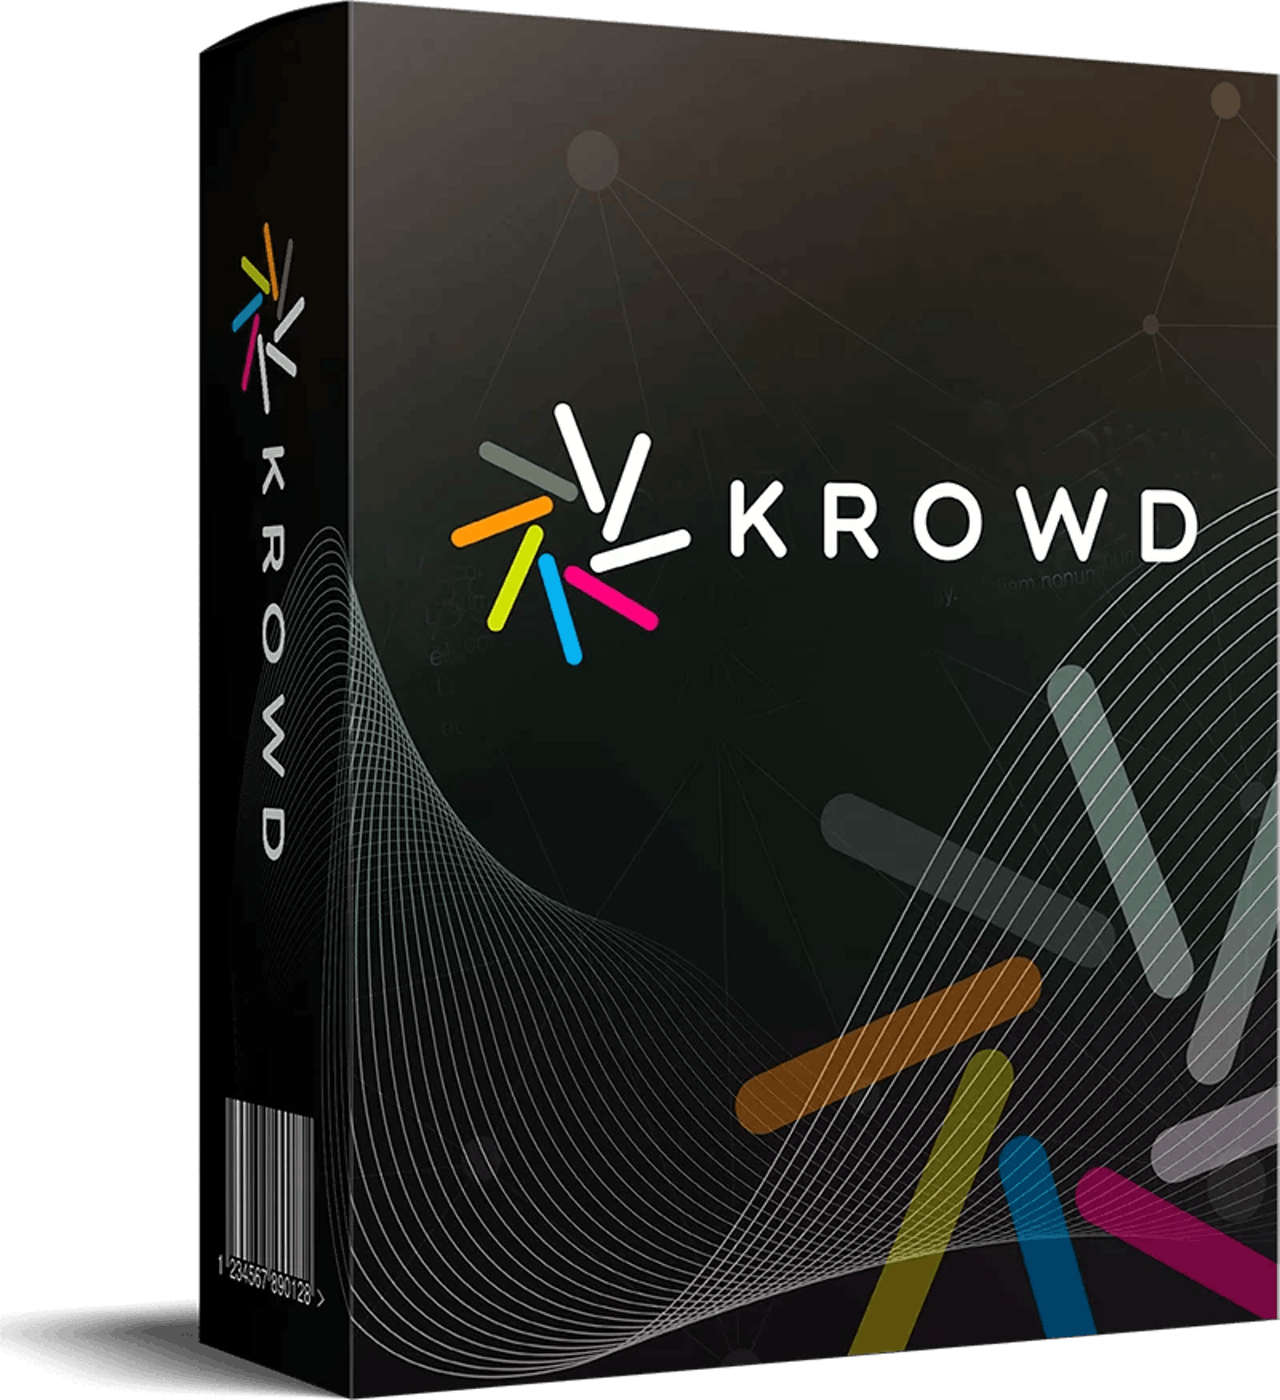 What is Krowd?